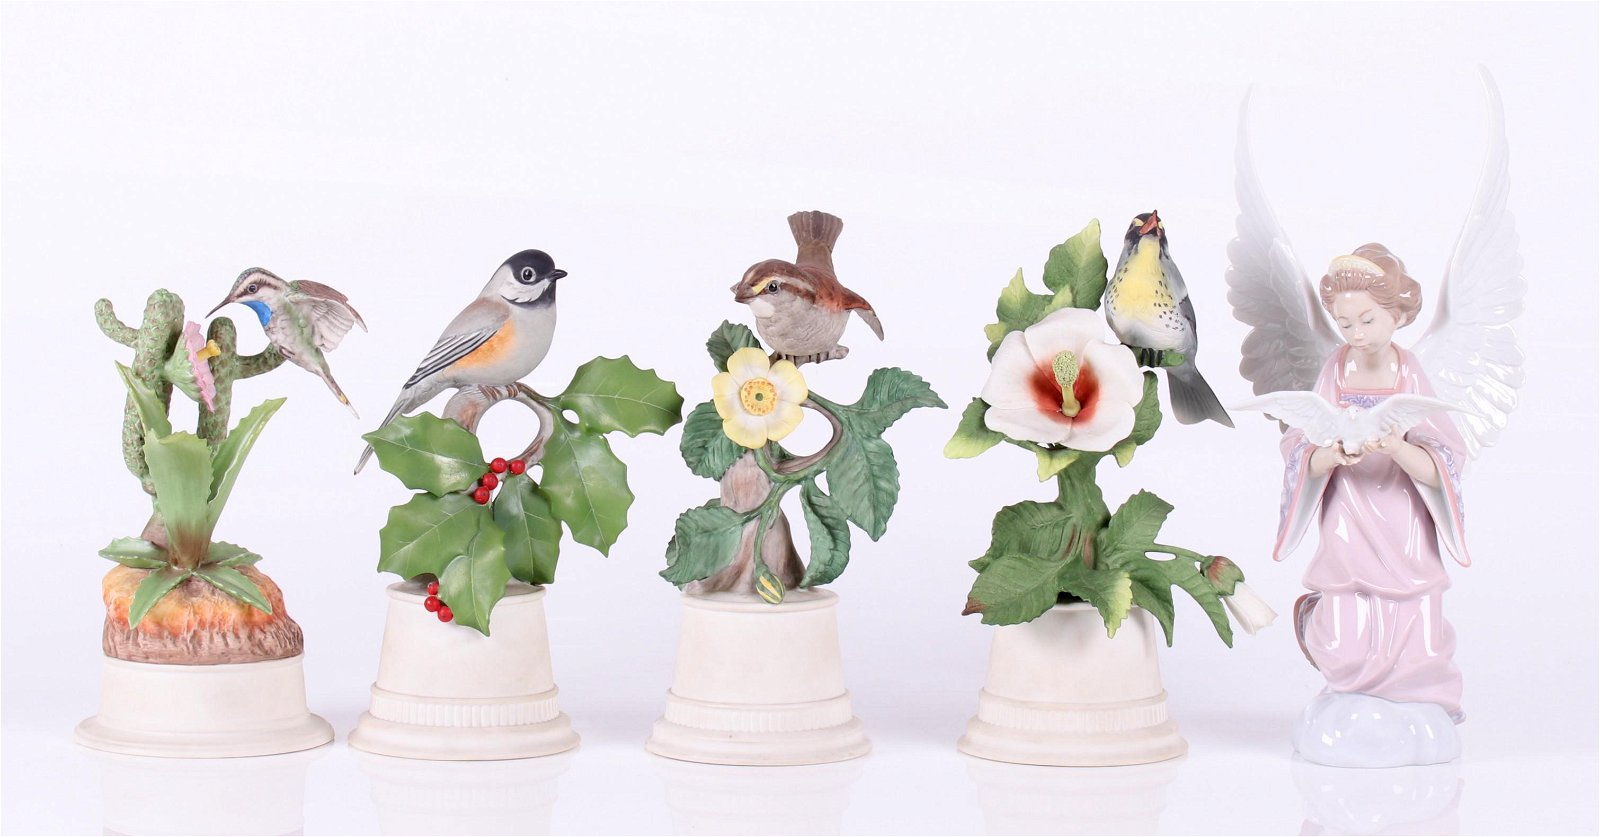 Four Boehm Birds and a Lladro Figurine